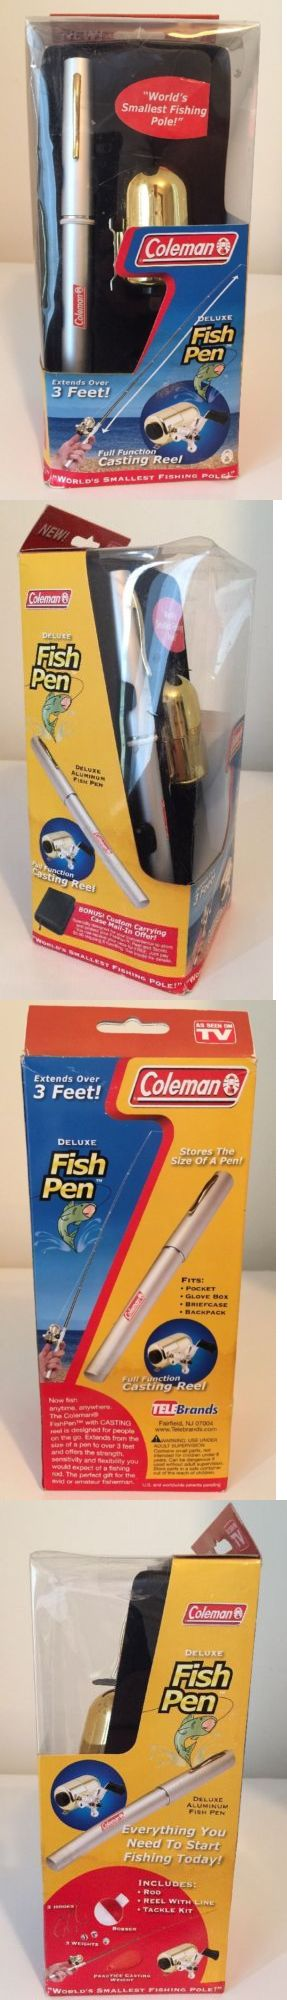 Other Rod and Reel Combos 179960: Coleman World S Smallest Fishing Pole Deluxe Aluminum Fish Pen, Brand New -> BUY IT NOW ONLY: $34.99 on eBay!